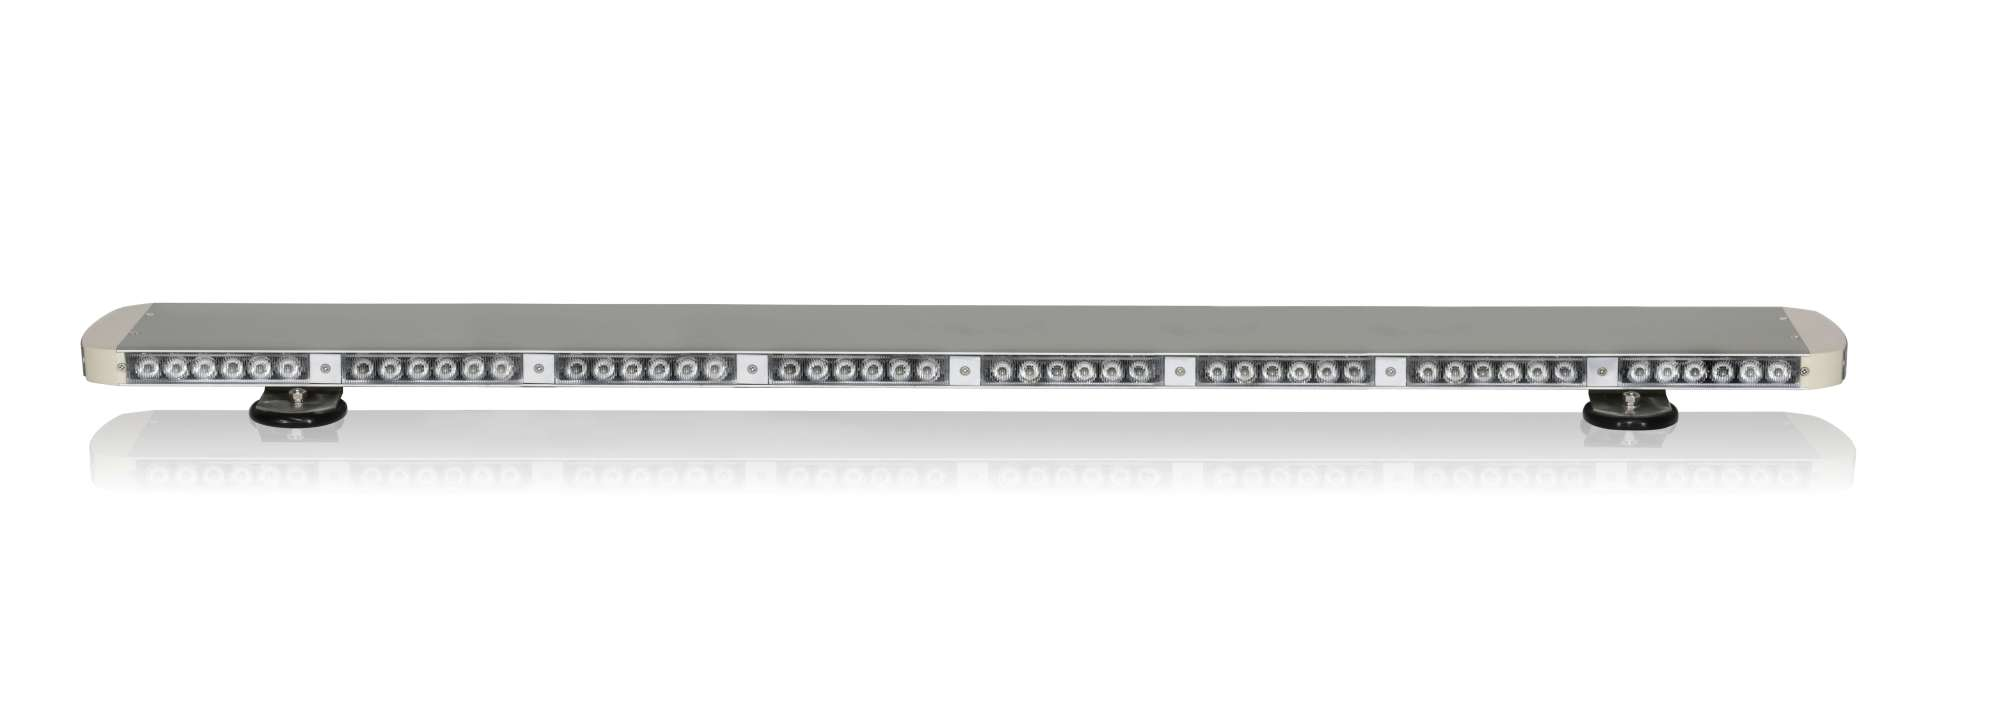 hight resolution of 53 inch razor extreme tow truck cree led light bar